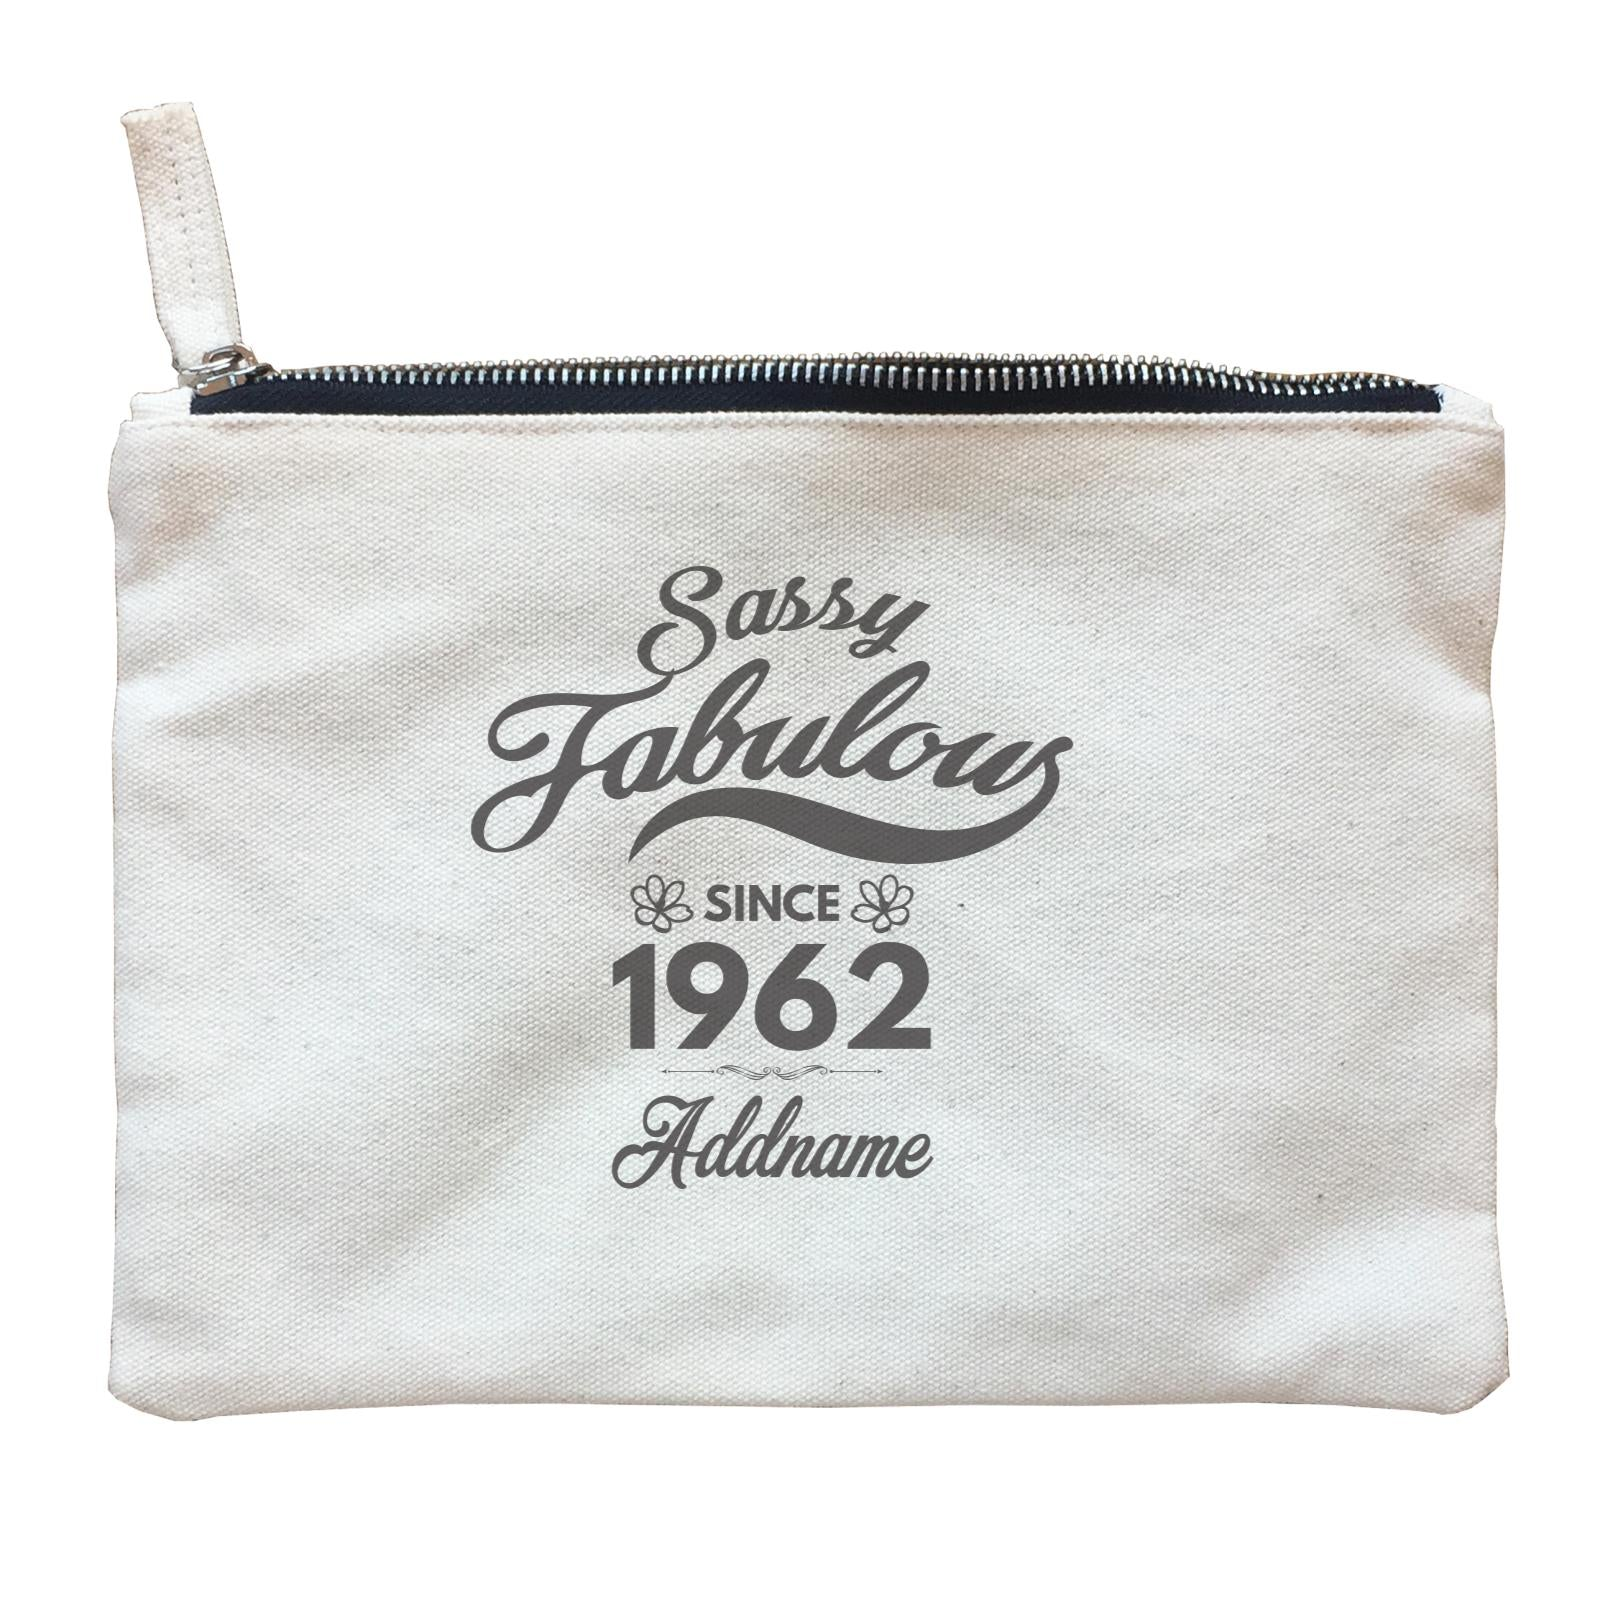 Personalize It Birthyear Sassy Fabulous Since with Addname and Add Year Zipper Pouch